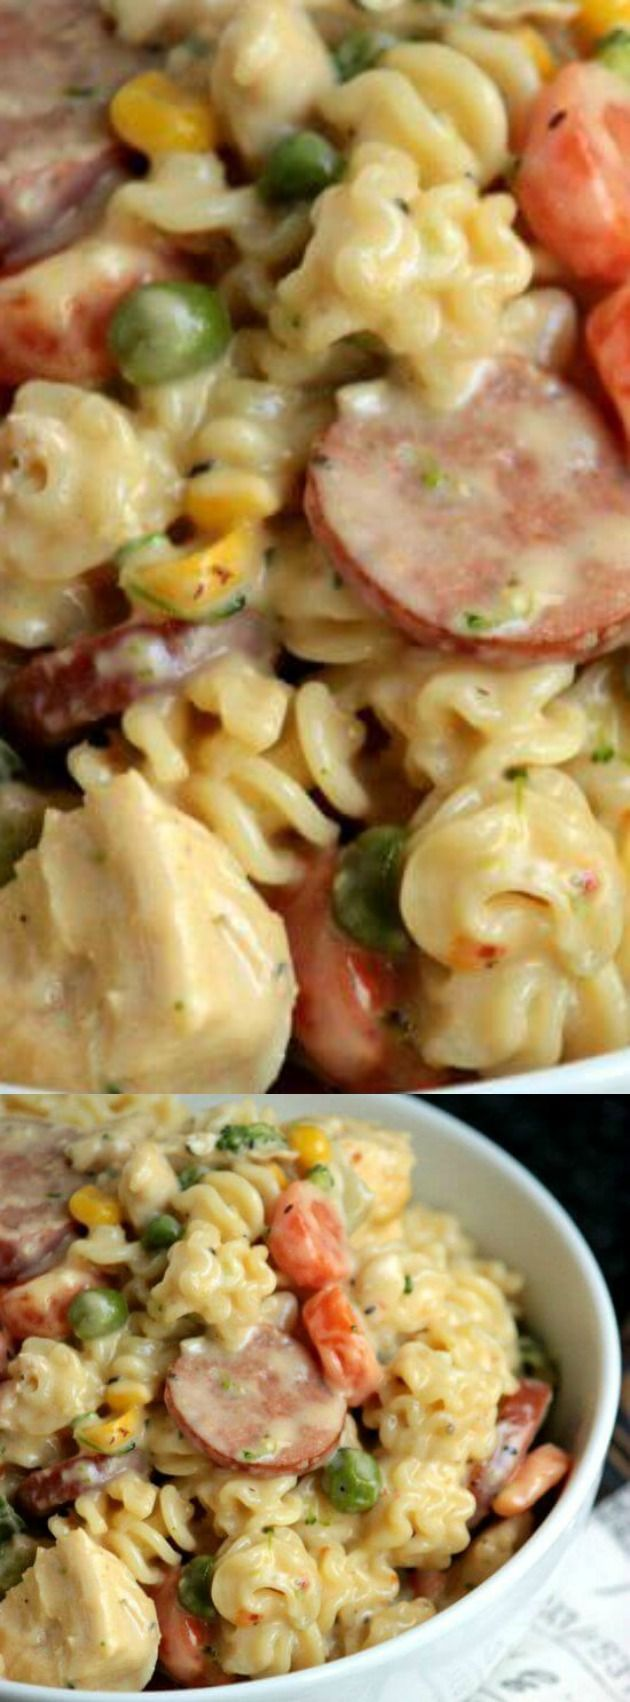 This Cheesy Chicken and Sausage Pasta from Big Bears Wife is filled with pasta, chicken, sausage, and a few of your favorite vegetables. It's a kid friendly recipe that your whole family will enjoy for dinner.